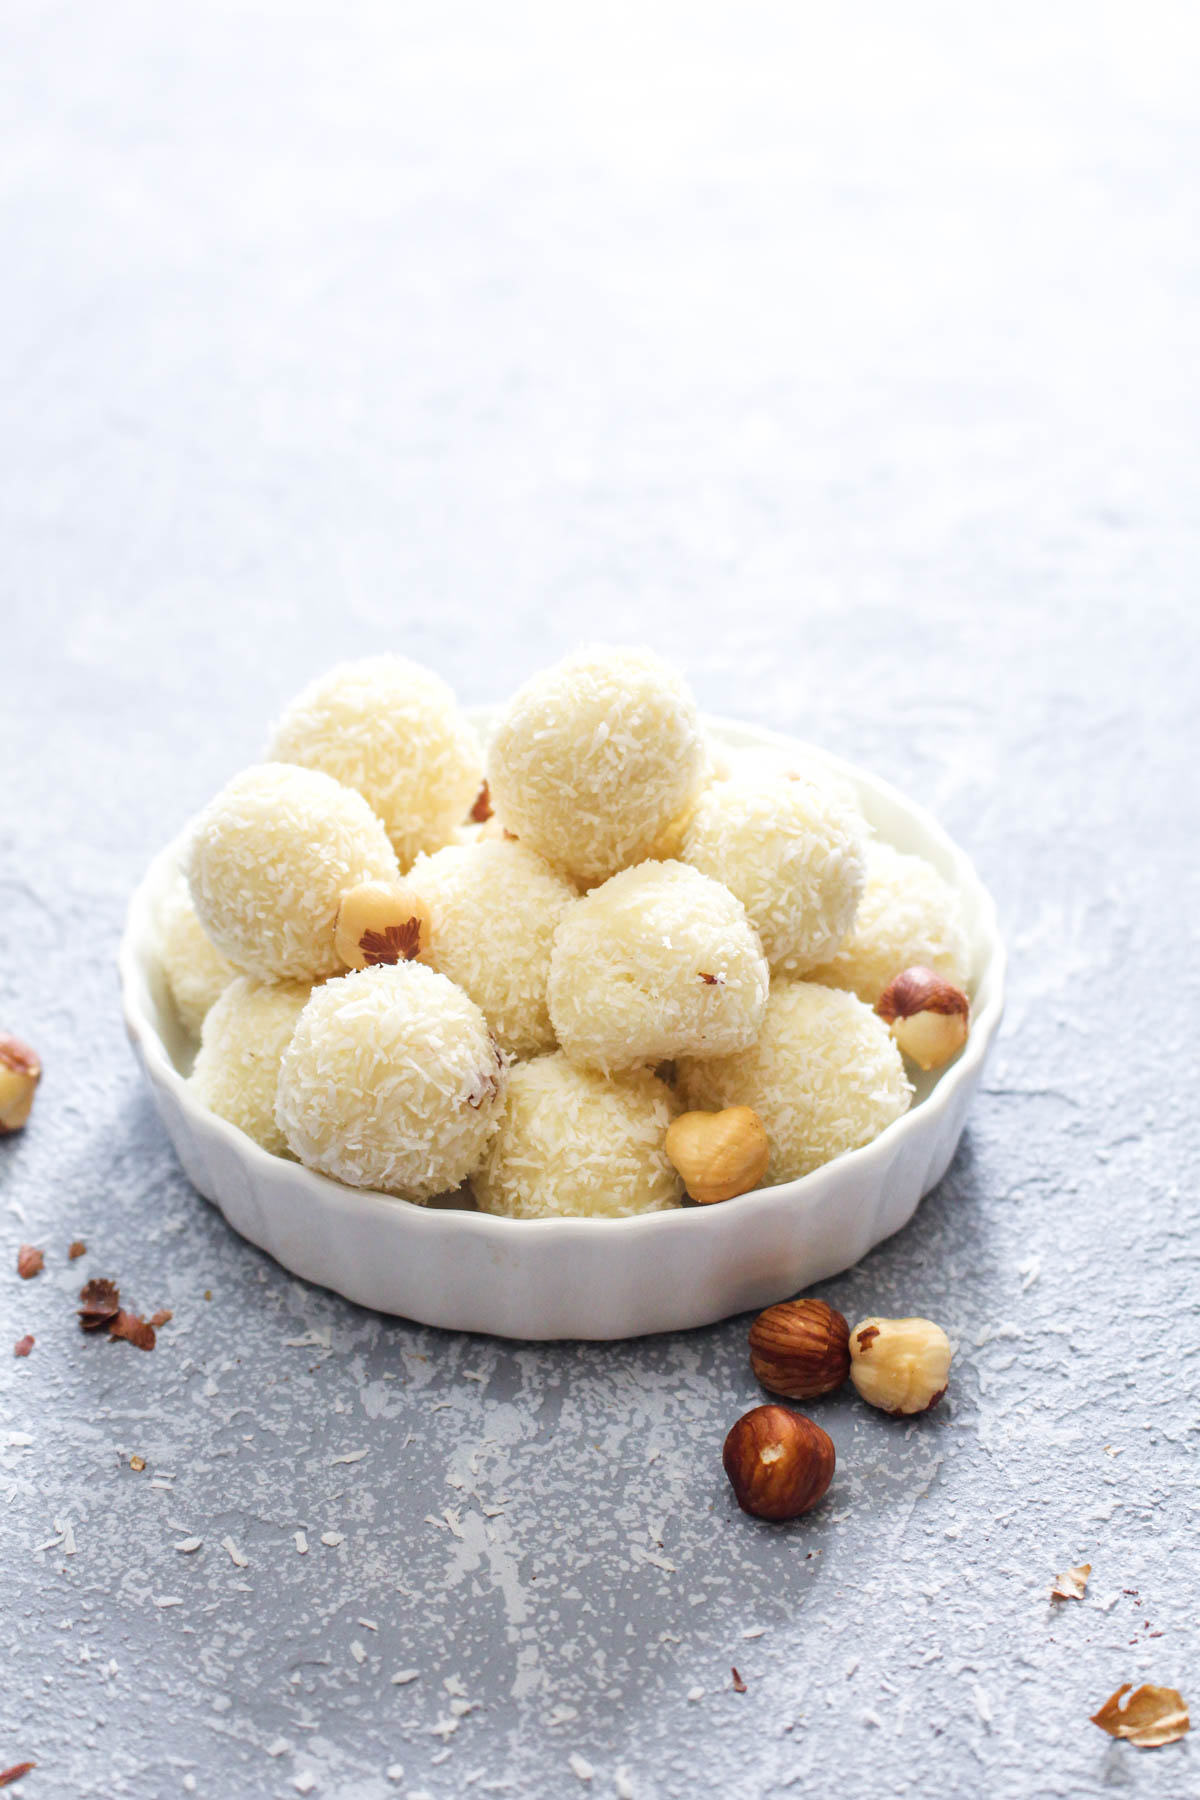 White Chocolate Hazelnut Truffles are a 5-ingredient sweet dessert that is allergy friendly! The melt-in-your-mouth white chocolate is paired with a crunchy nutty hazelnut center. The perfect addition to your Christmas cookie tray. | CatchingSeeds.com